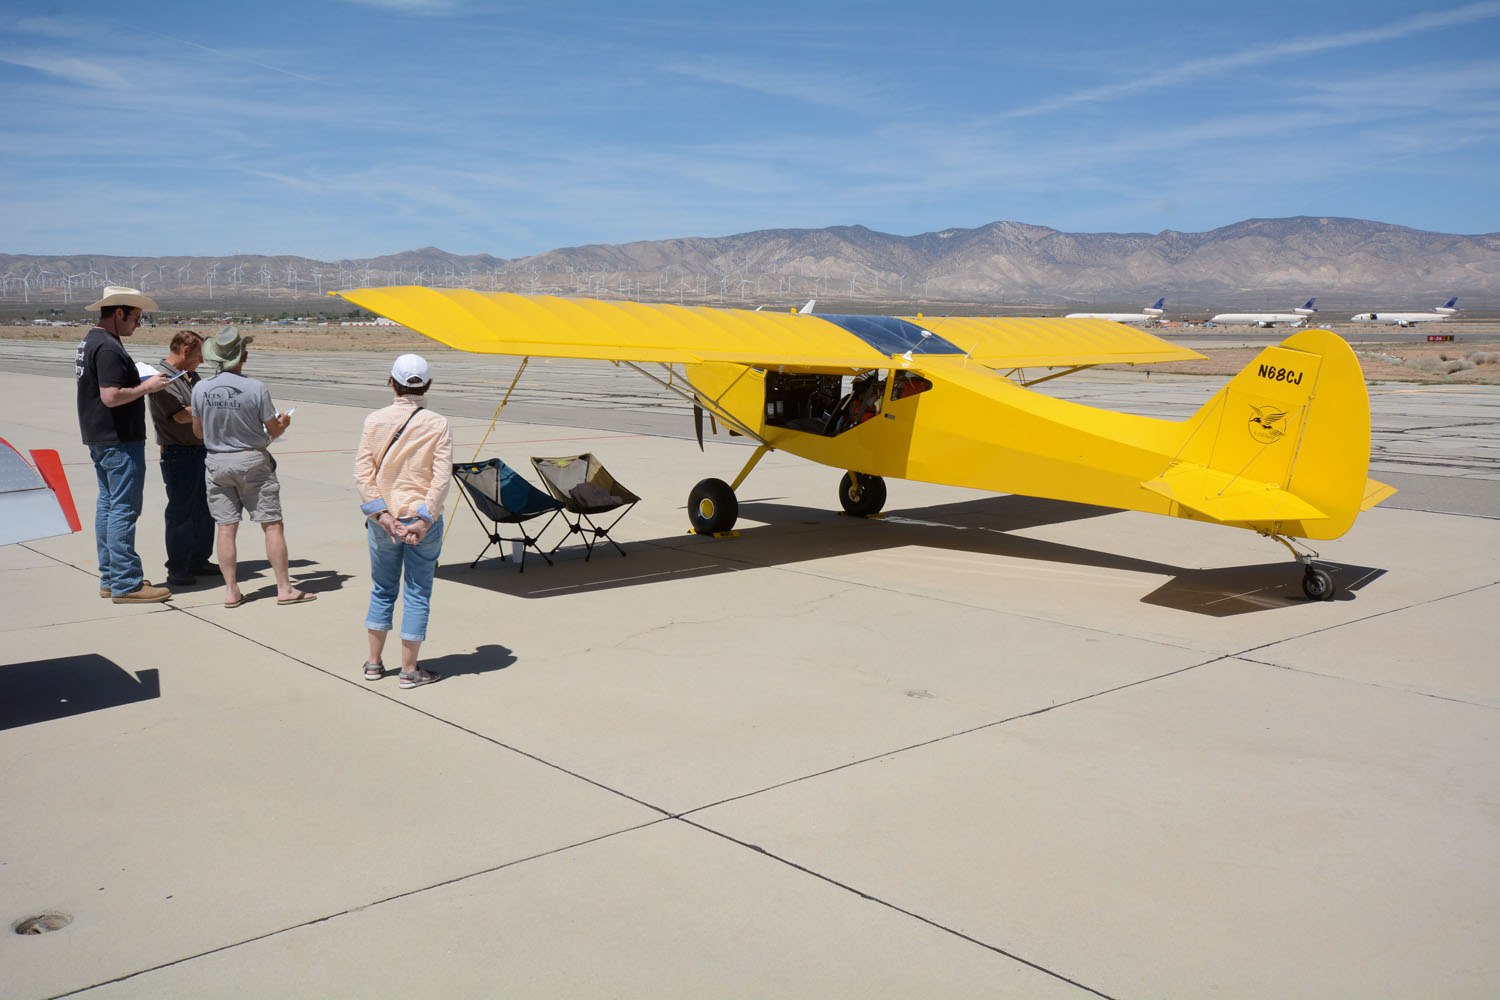 John and Carolyn Spratt's Rans S-20X Raven was a real eye-catcher on the Mojave ramp. Powered by a turboed Rotax 914 for good high-country adventures, the machine positively drips with attention to detail.